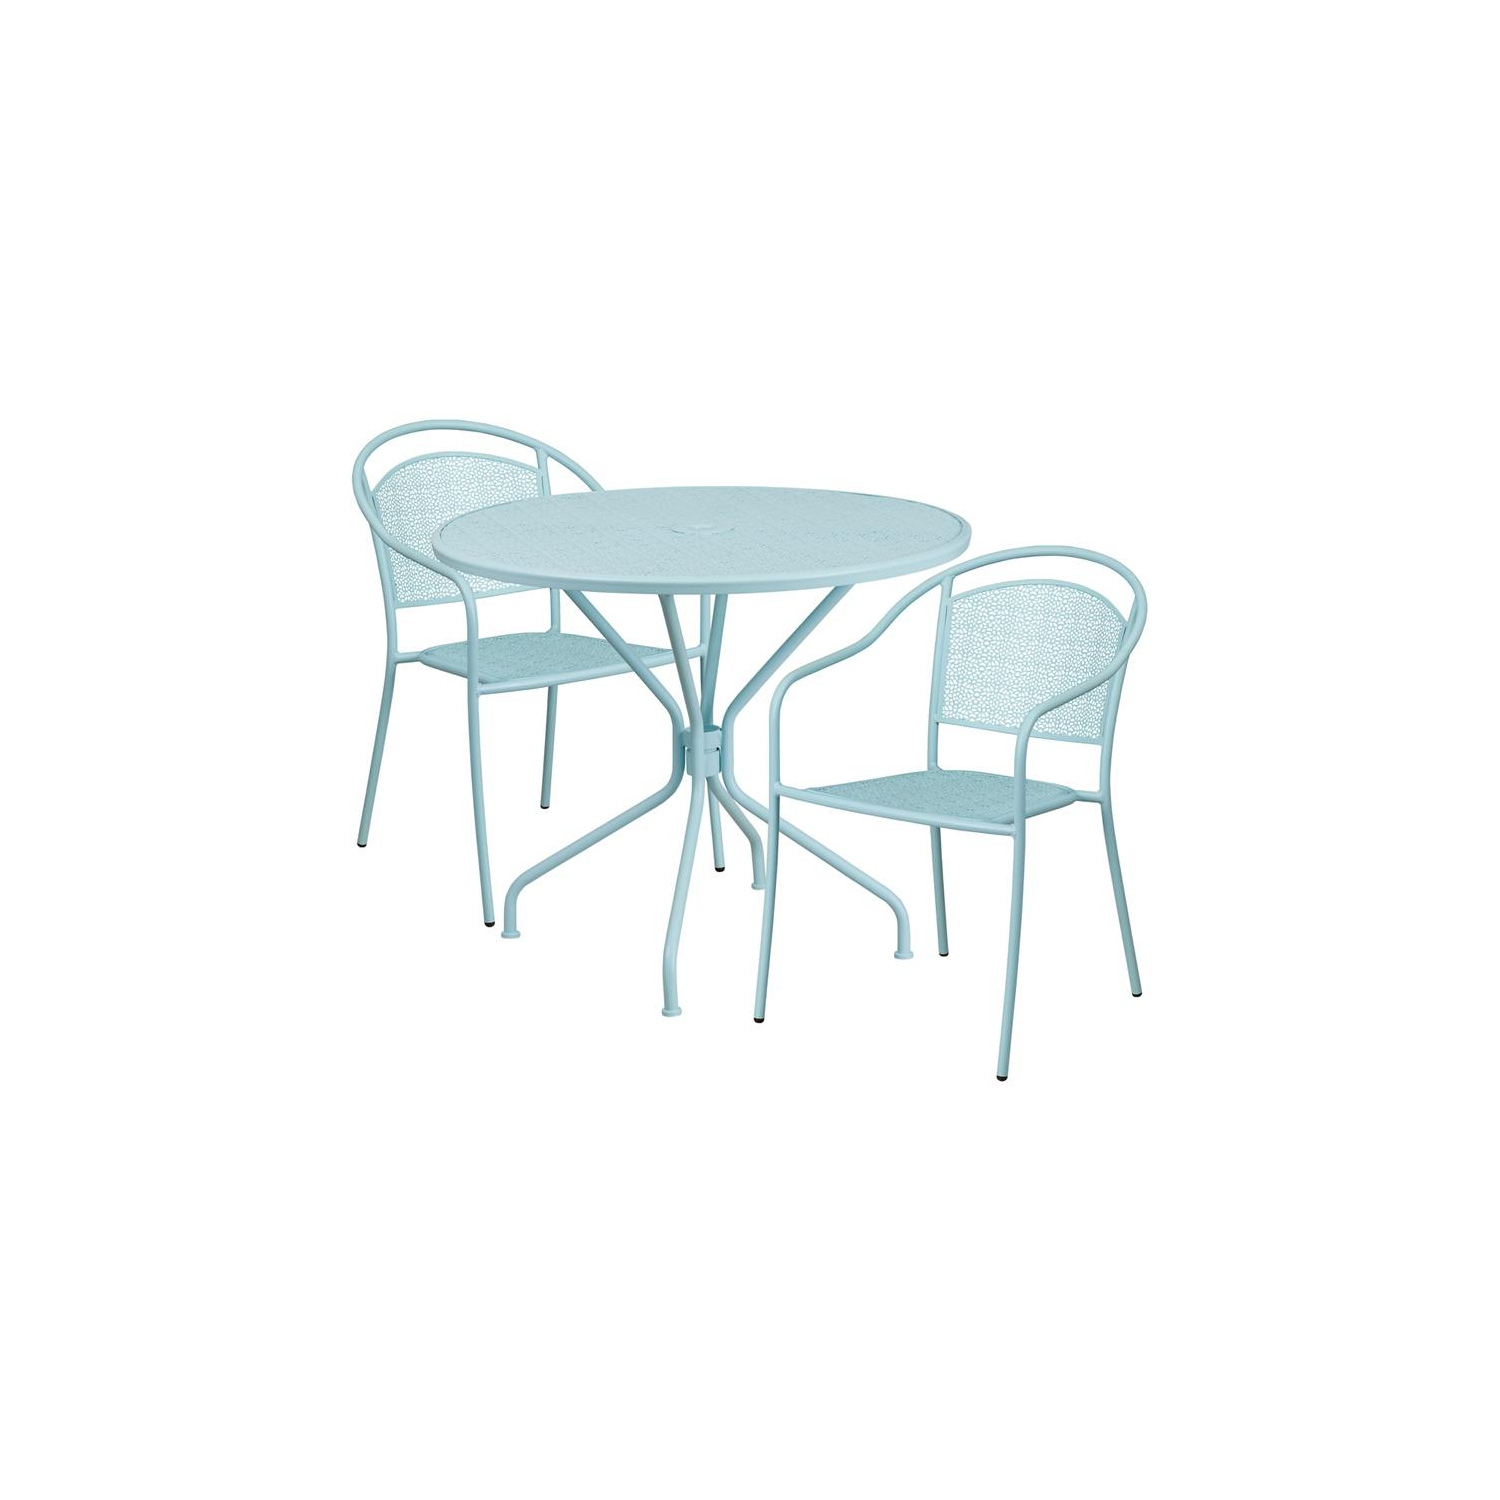 35 25rd white patio table set patio sets best buy canada